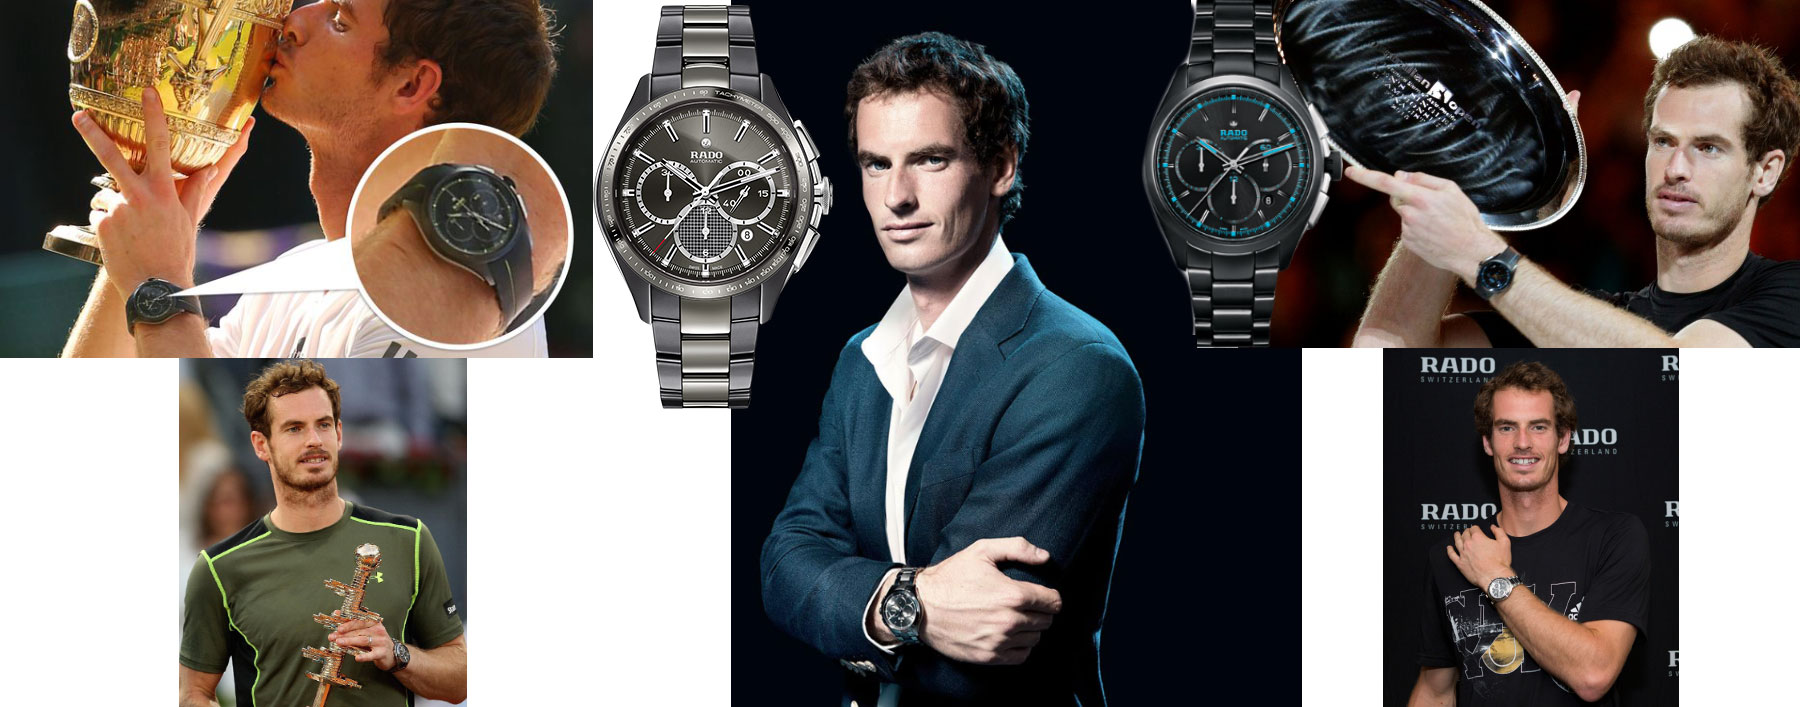 Andy Murray Rado Watches Wimbledon Madrid Cincinnati